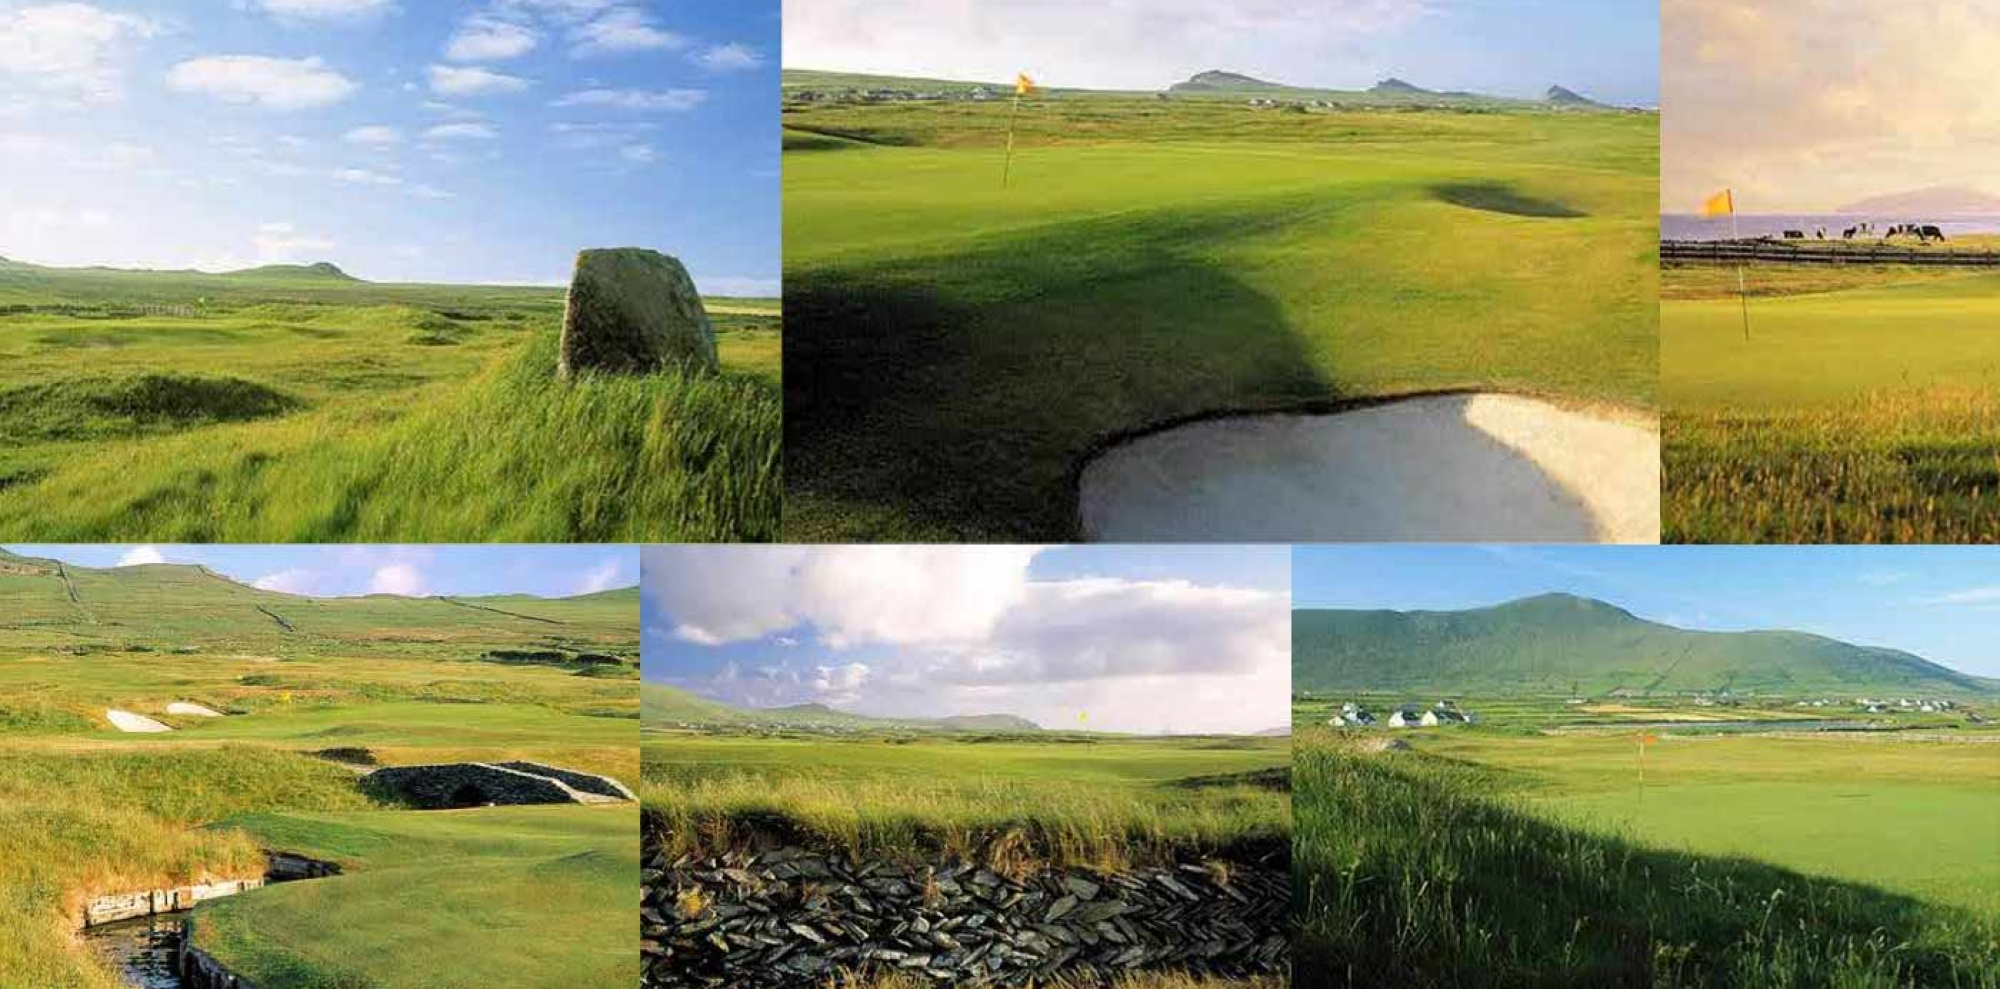 A place of outstanding natural beauty and the game of Golf in partnership